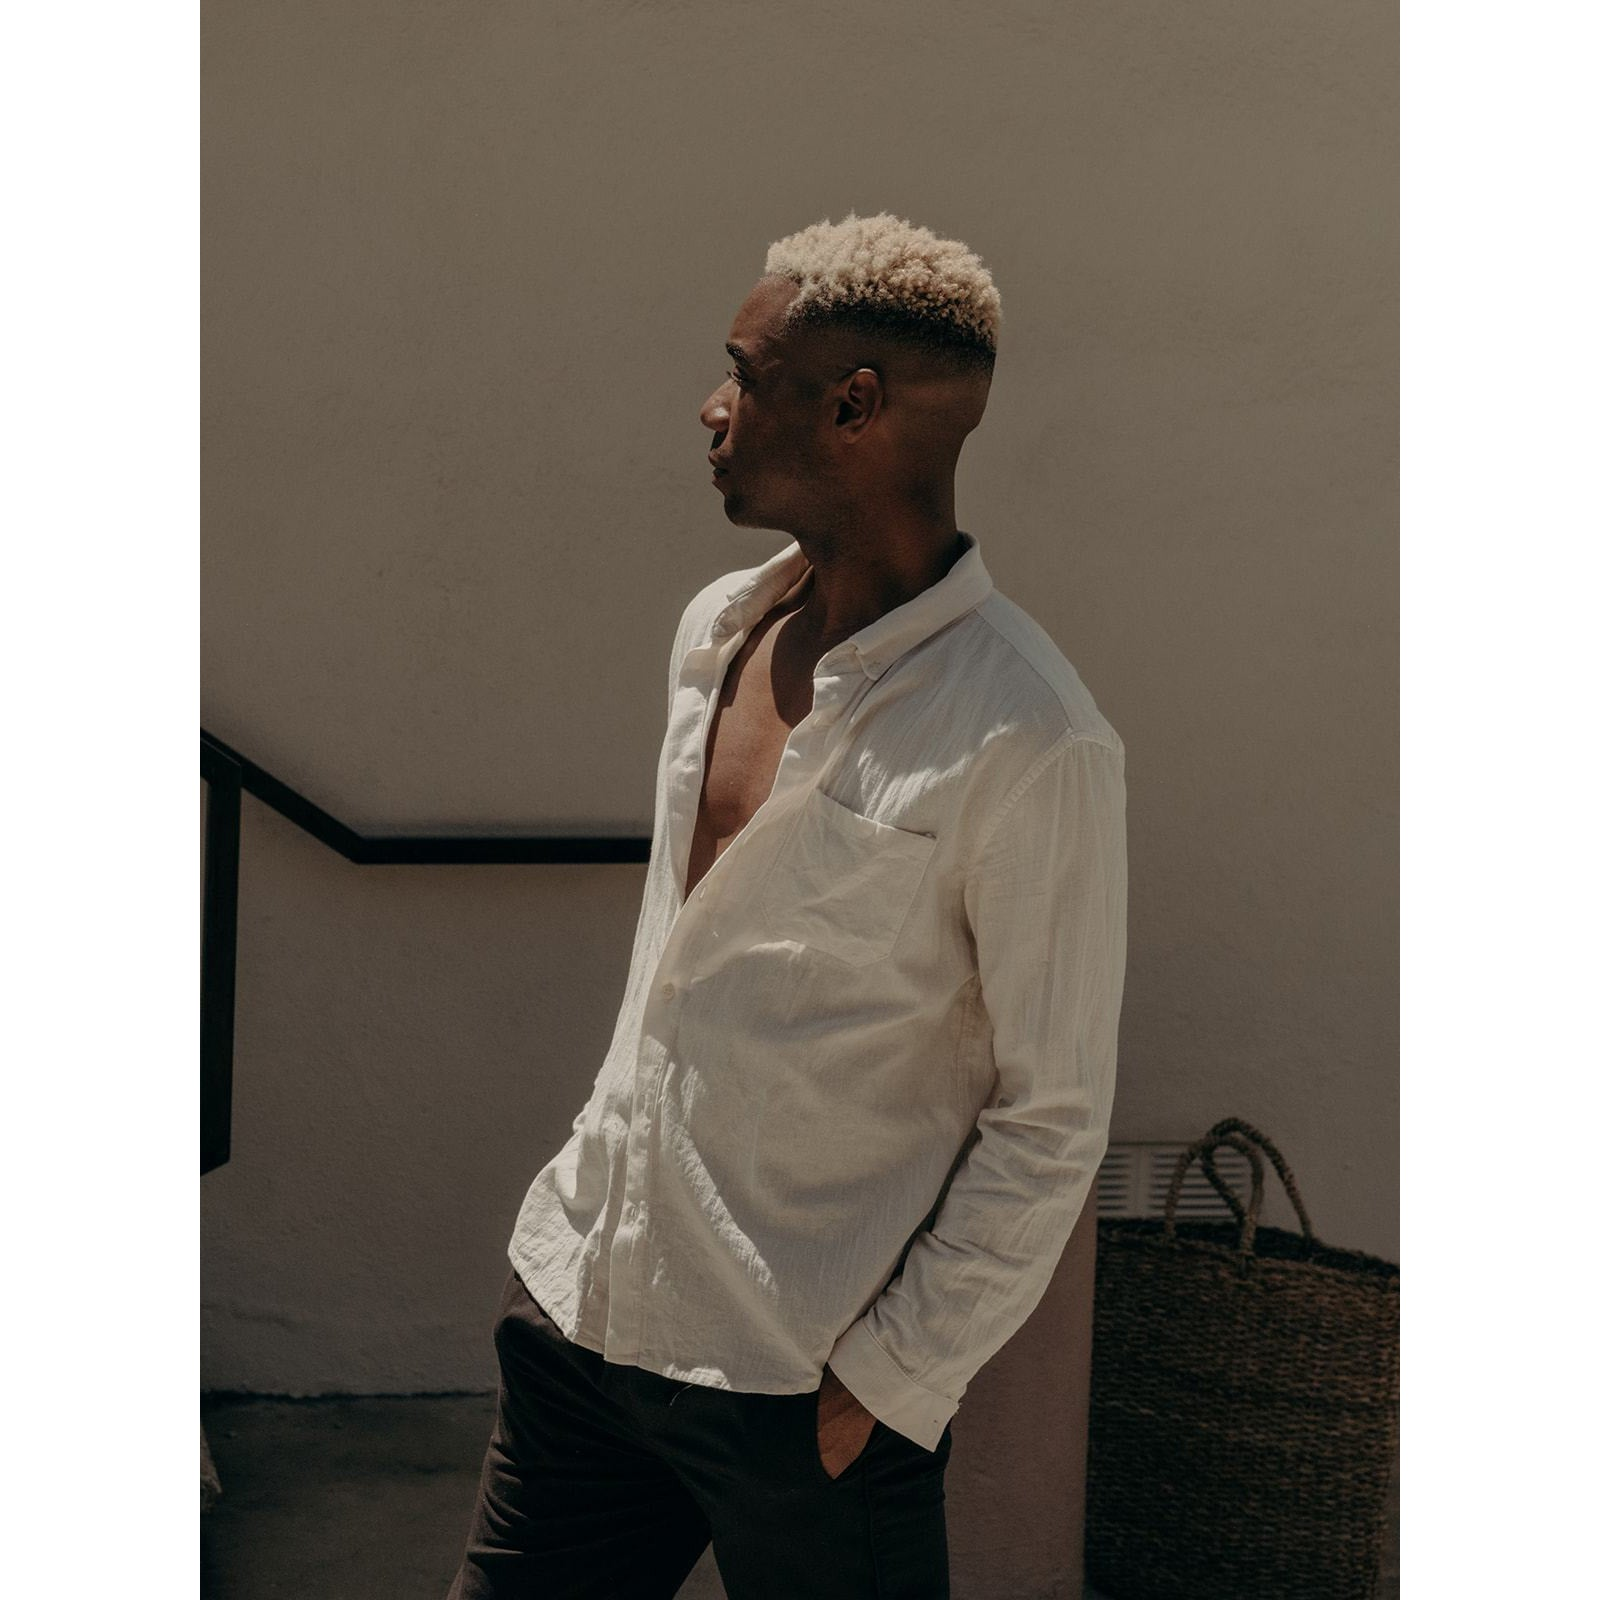 Button down Shirt in off white cotton - counterfitstudio